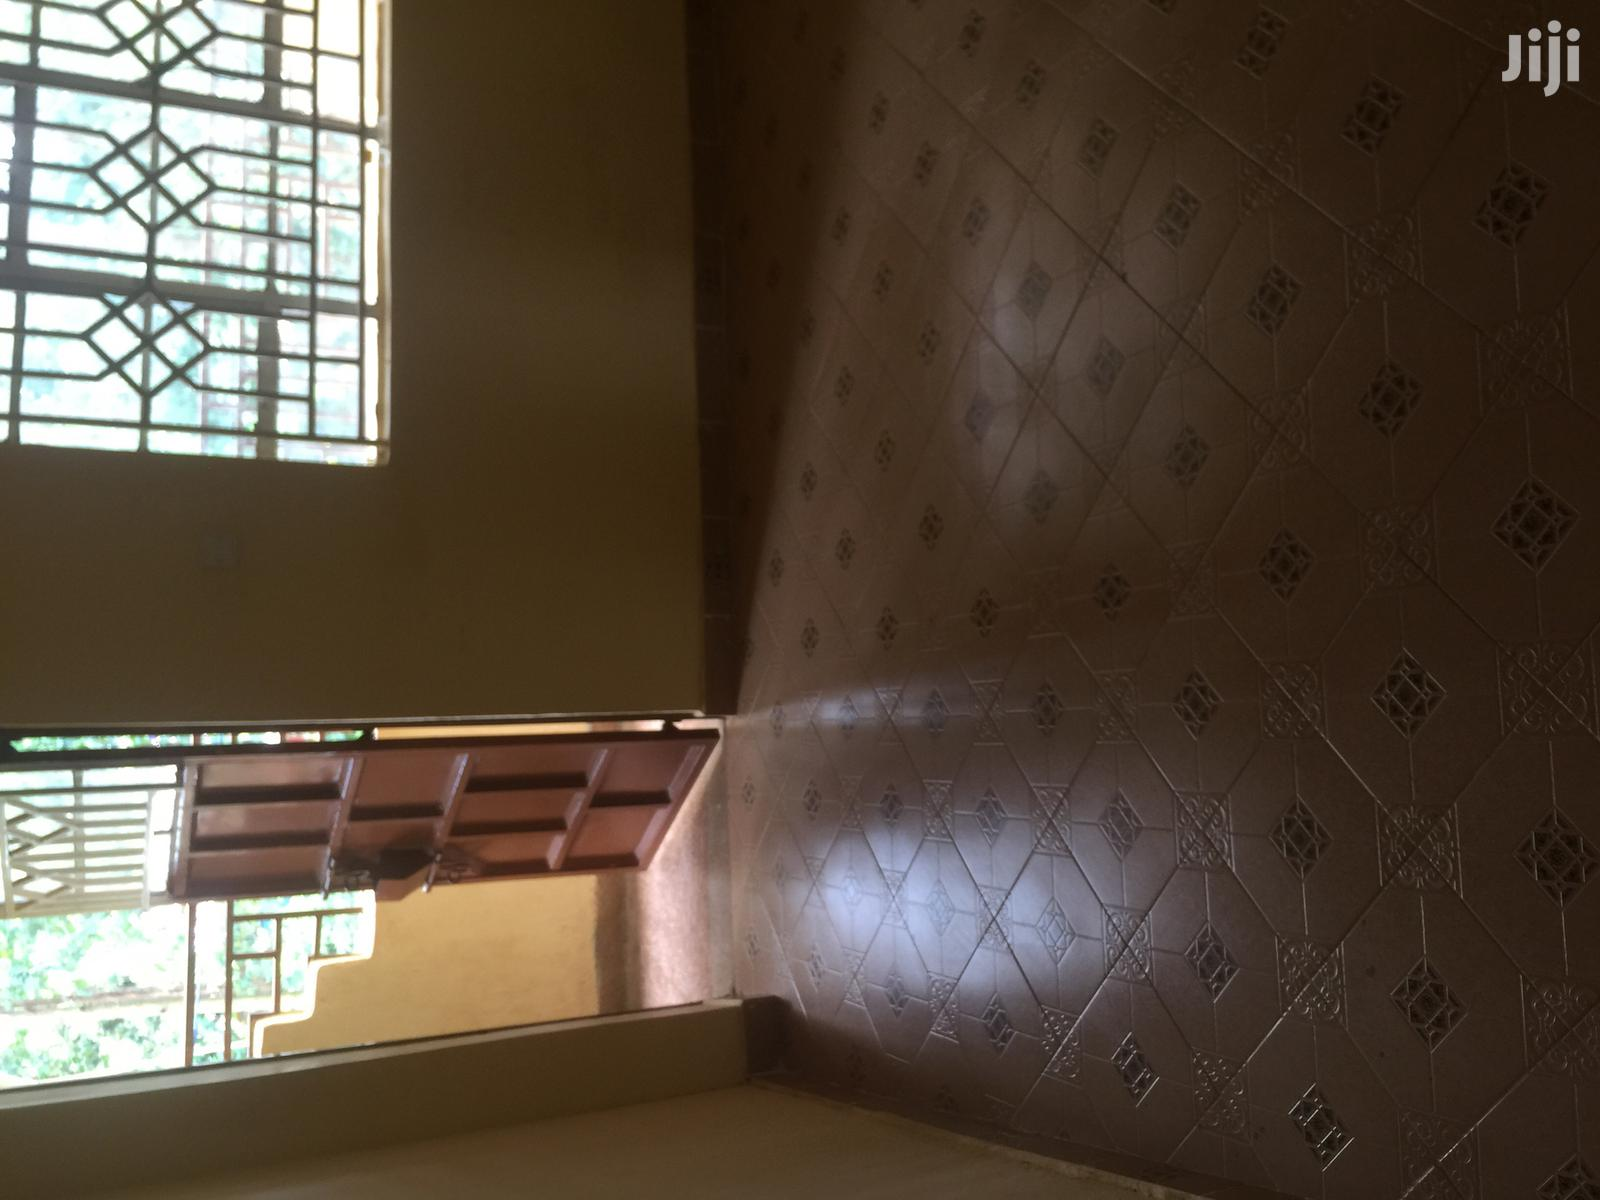 2 Bedroom Rental Flats At Nyakoe Kisii   Houses & Apartments For Rent for sale in Nyakoe, Kitutu Chache South, Kenya